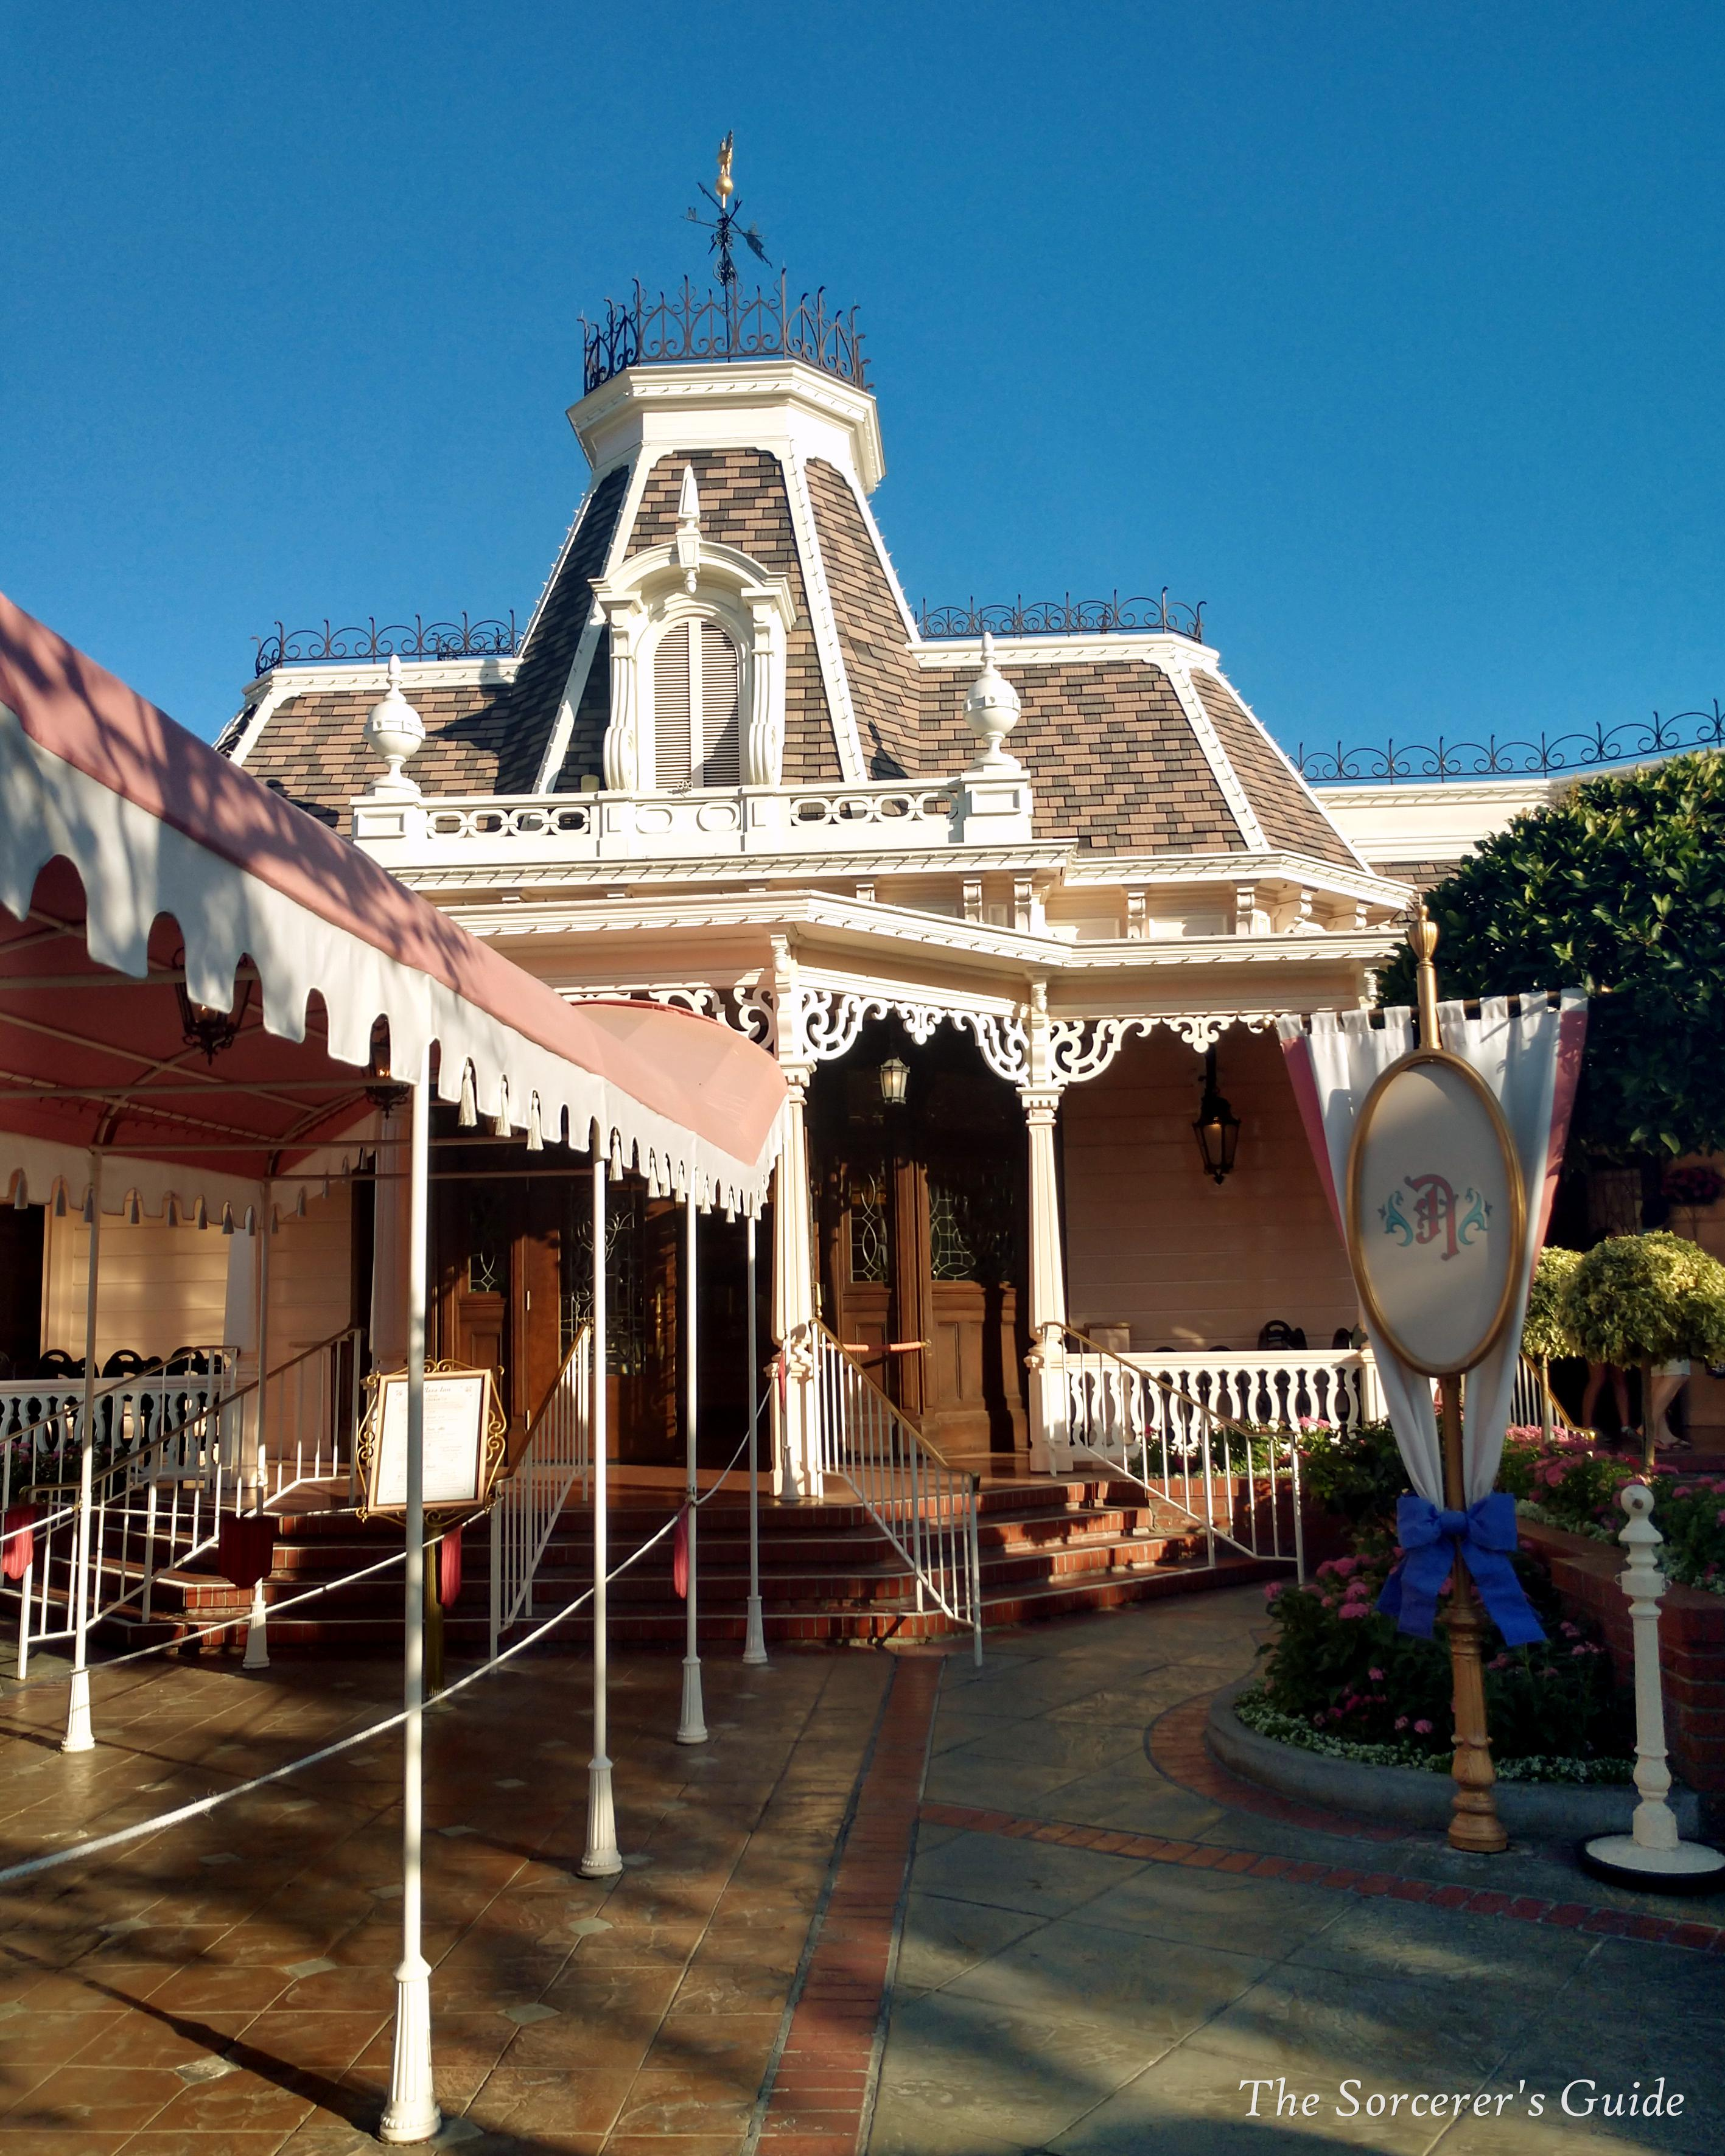 Entrance of Plaza Inn